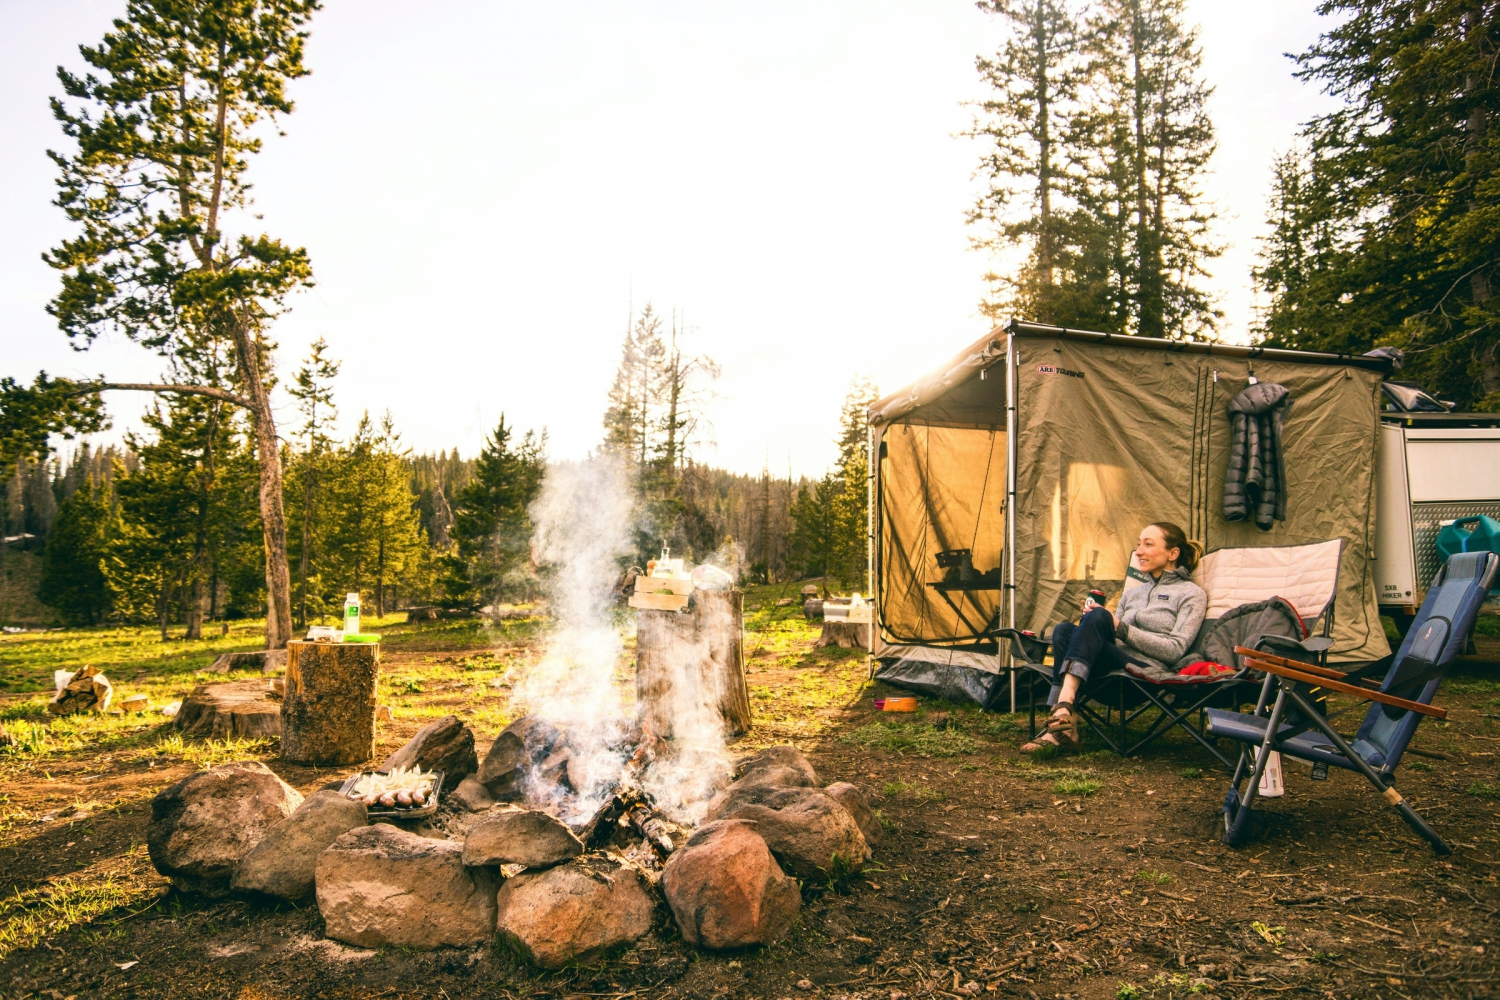 10 Camping Do's and Dont's